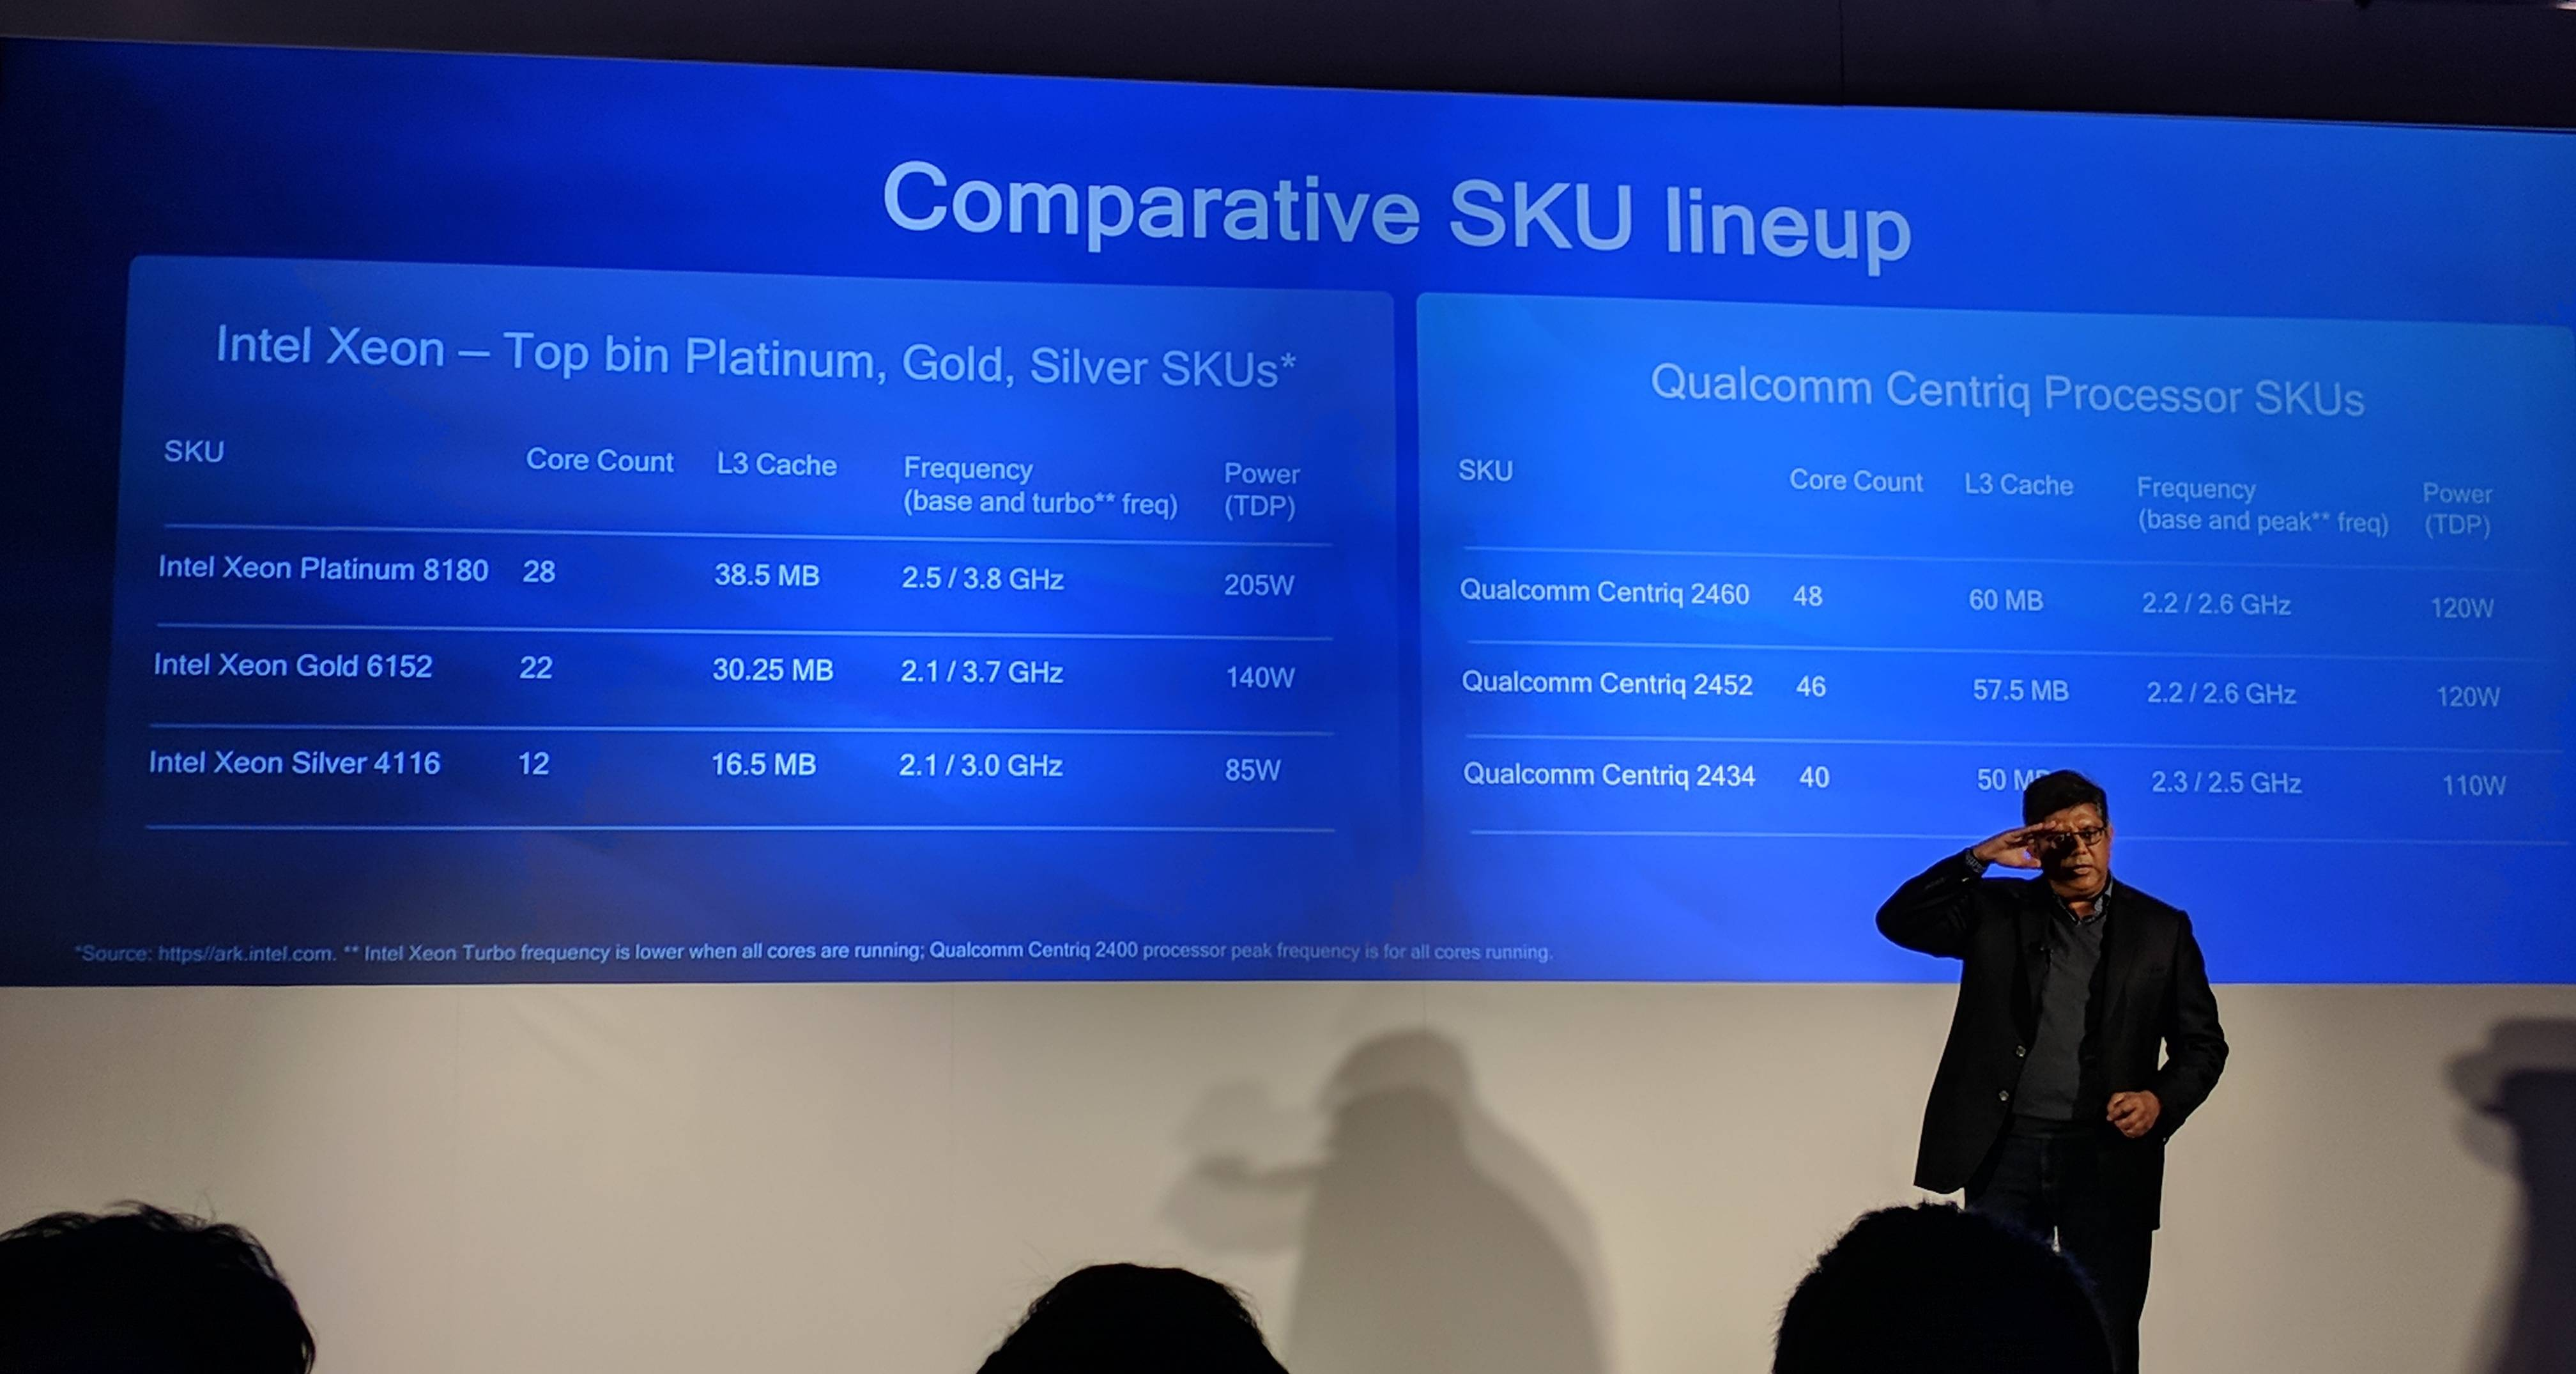 Qualcomm is shipping next chip it'll perhaps get sued for